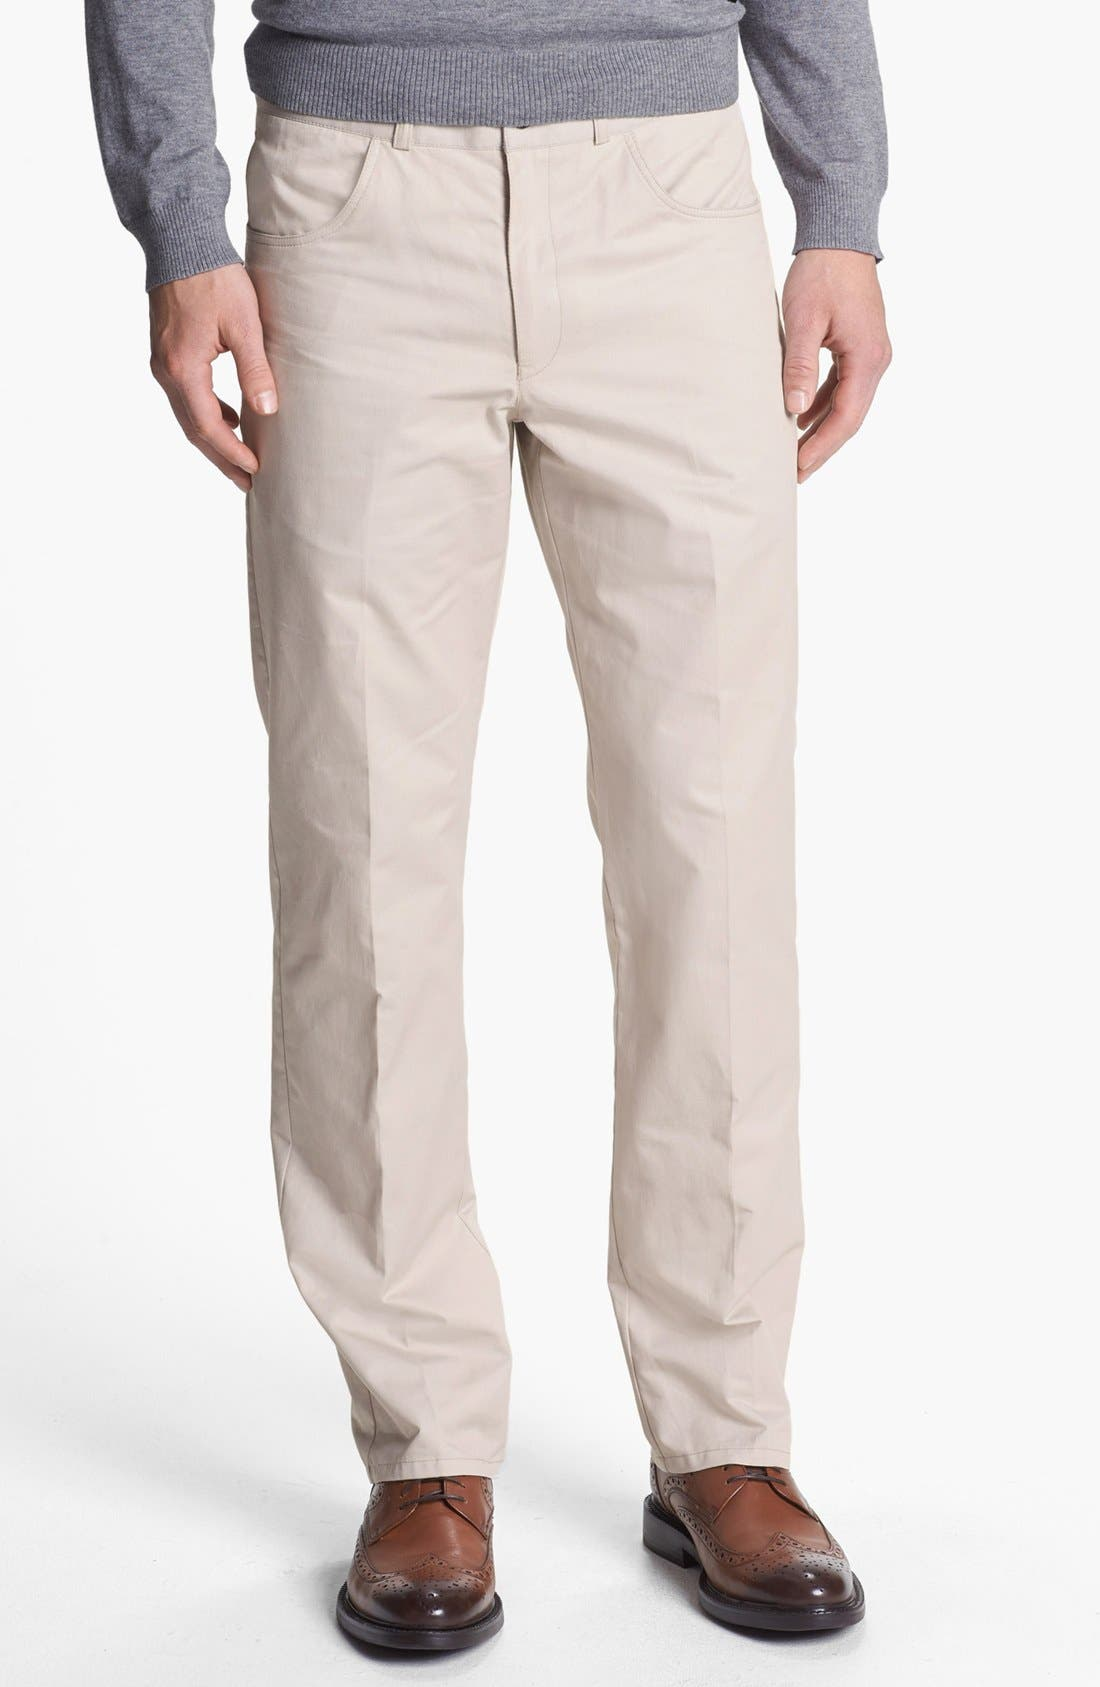 Alternate Image 1 Selected - Vince Camuto Slim Fit Chinos